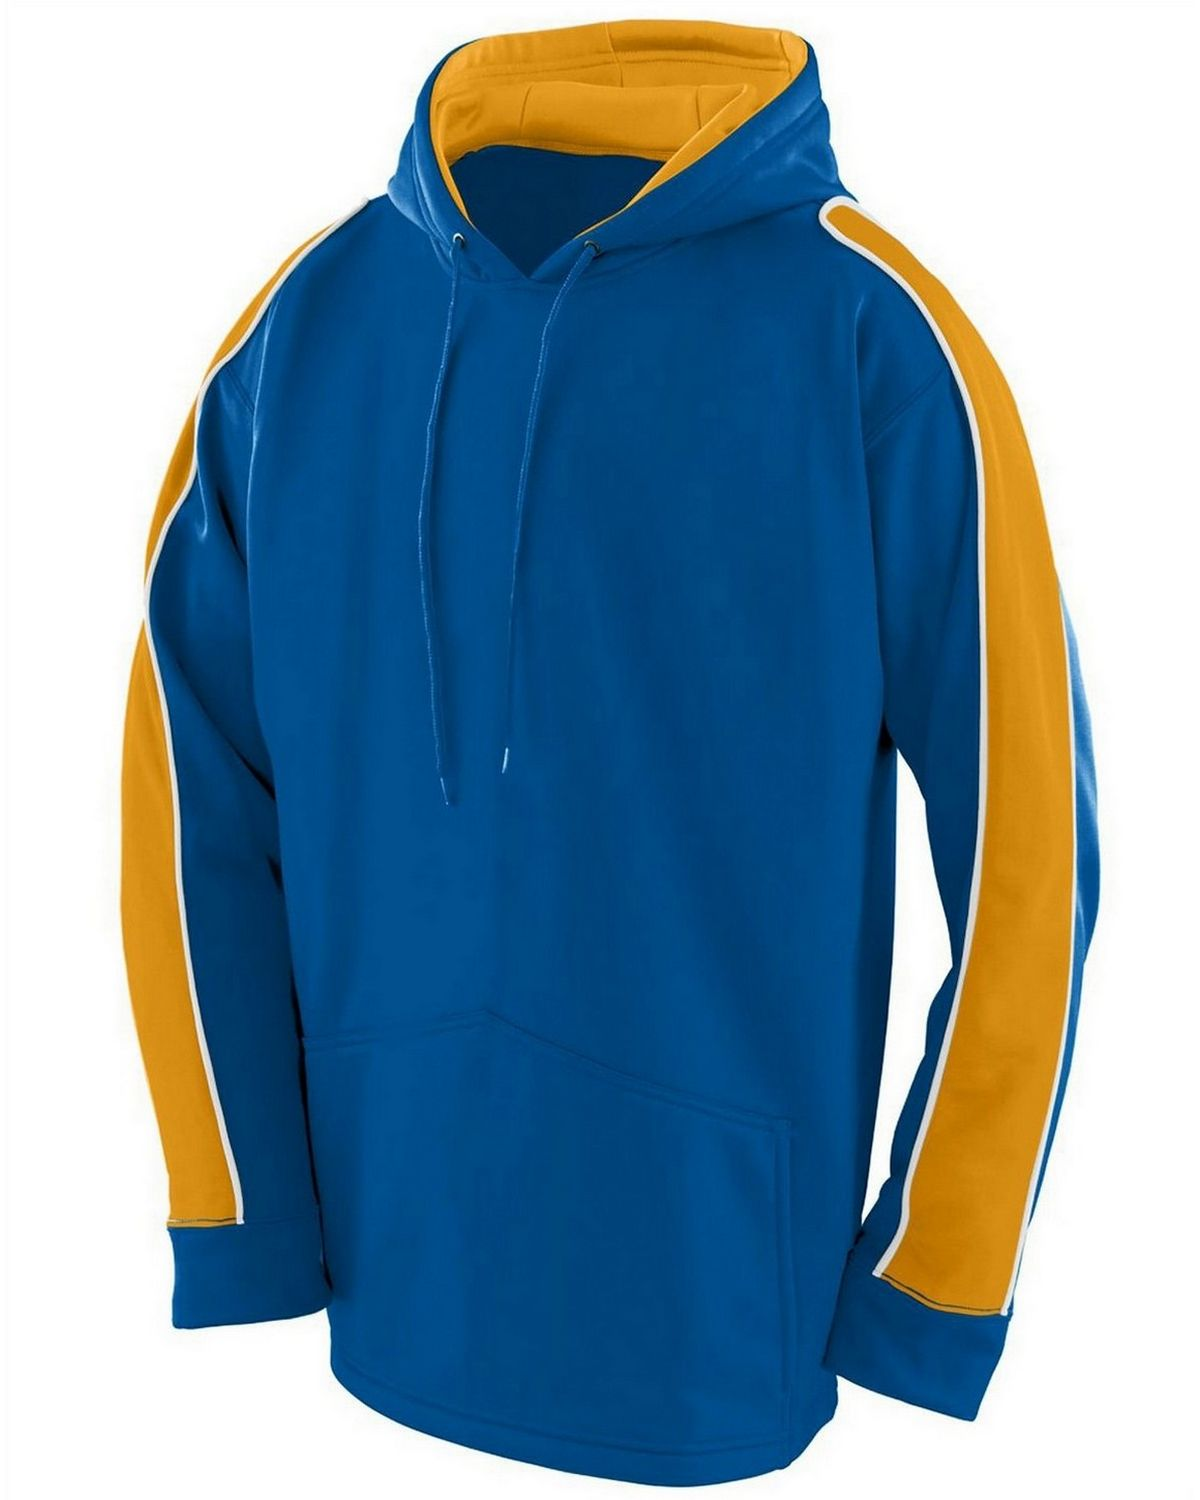 Augusta Sportswear 5524 Fleece Hoody - Royal/Gold/White - L 5524